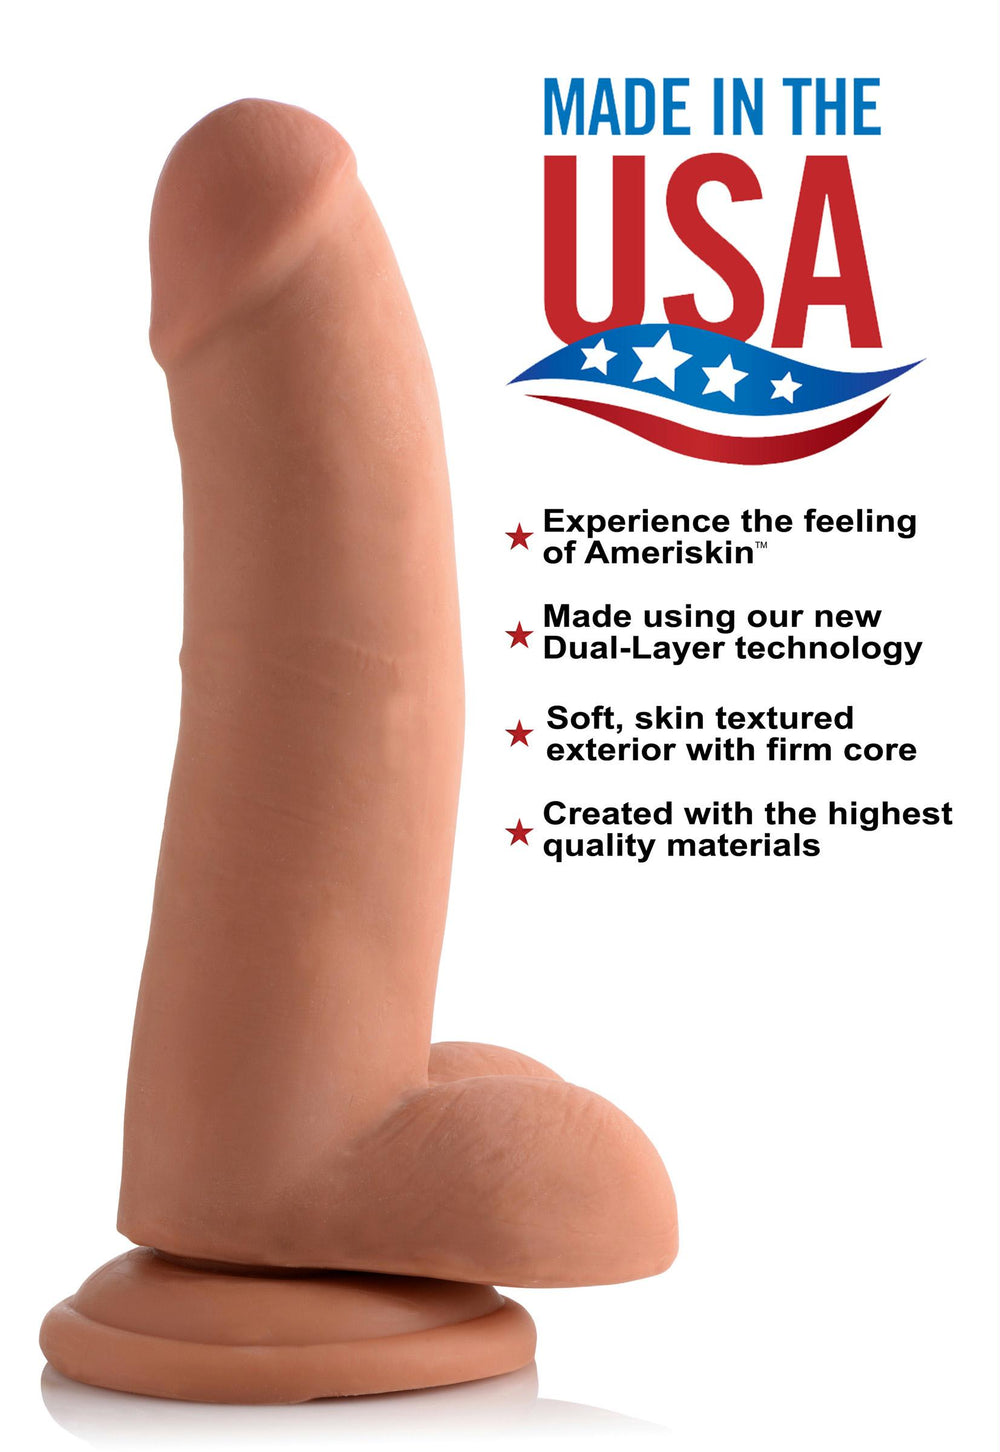 8 Inch Ultra Real Dual Layer Suction Cup Dildo- Medium Skin Tone - Fun and Kinky Sex Toys